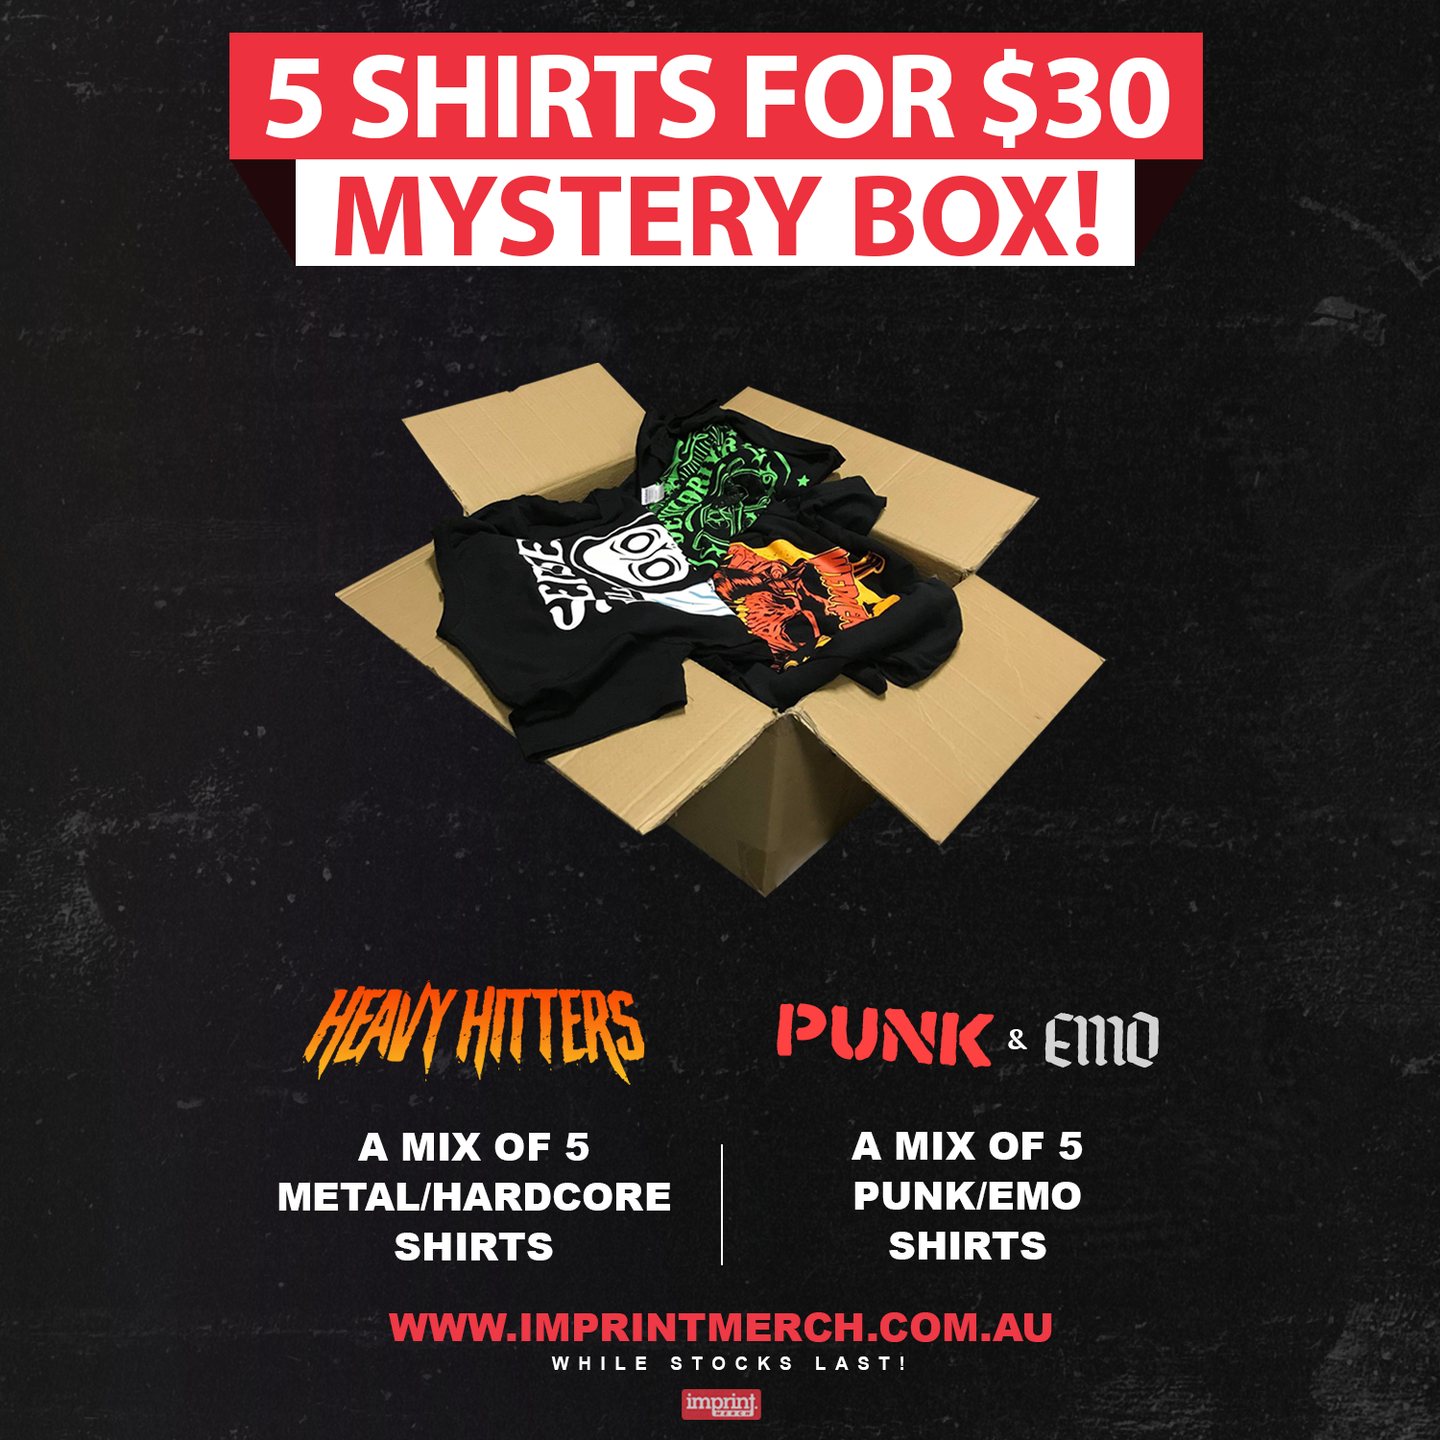 Mystery Box - 5 Shirts For $30